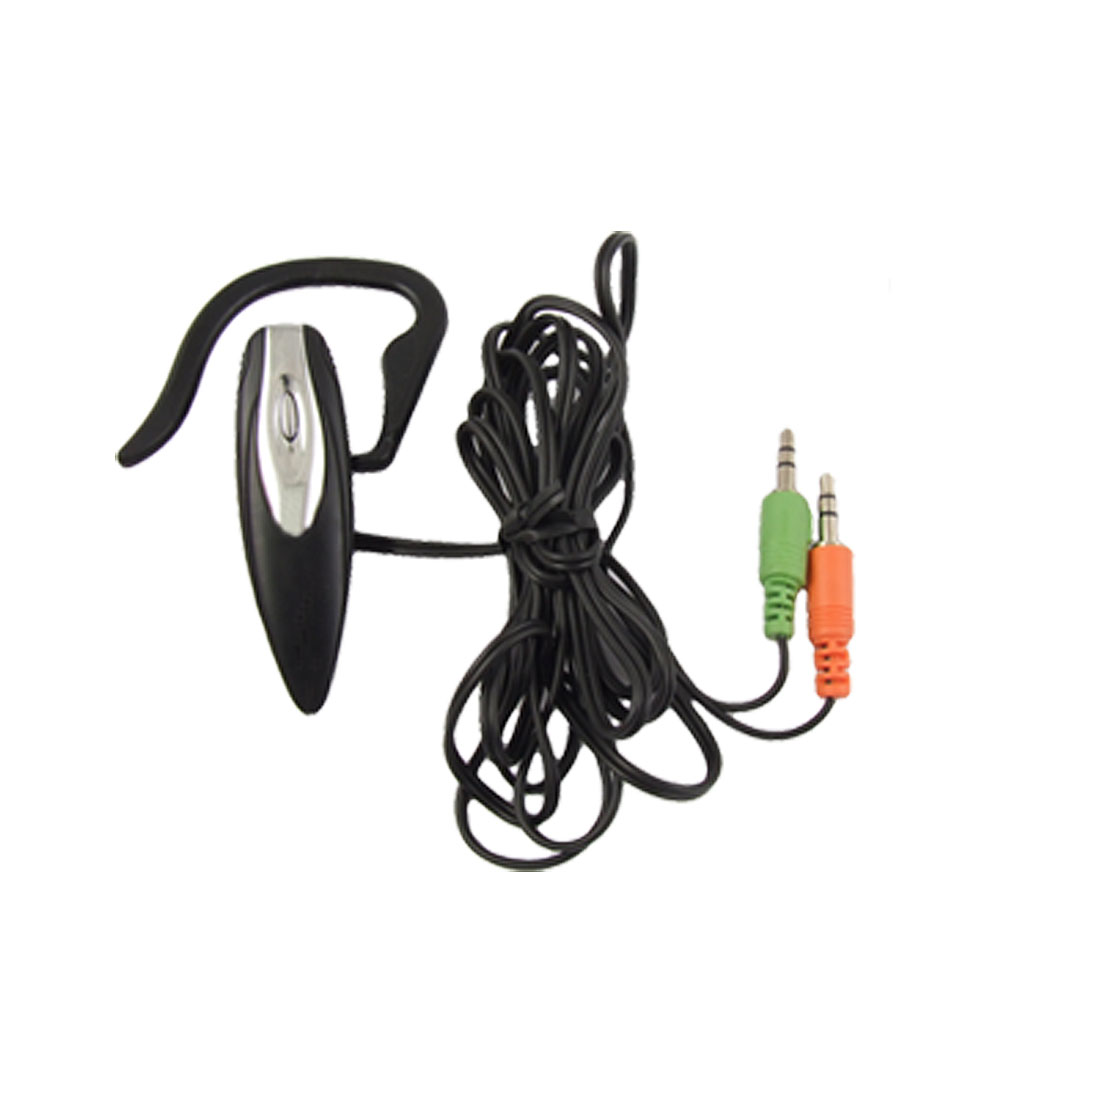 3.5mm Black Wire Plastic Right Ear Hook Microphone Headset